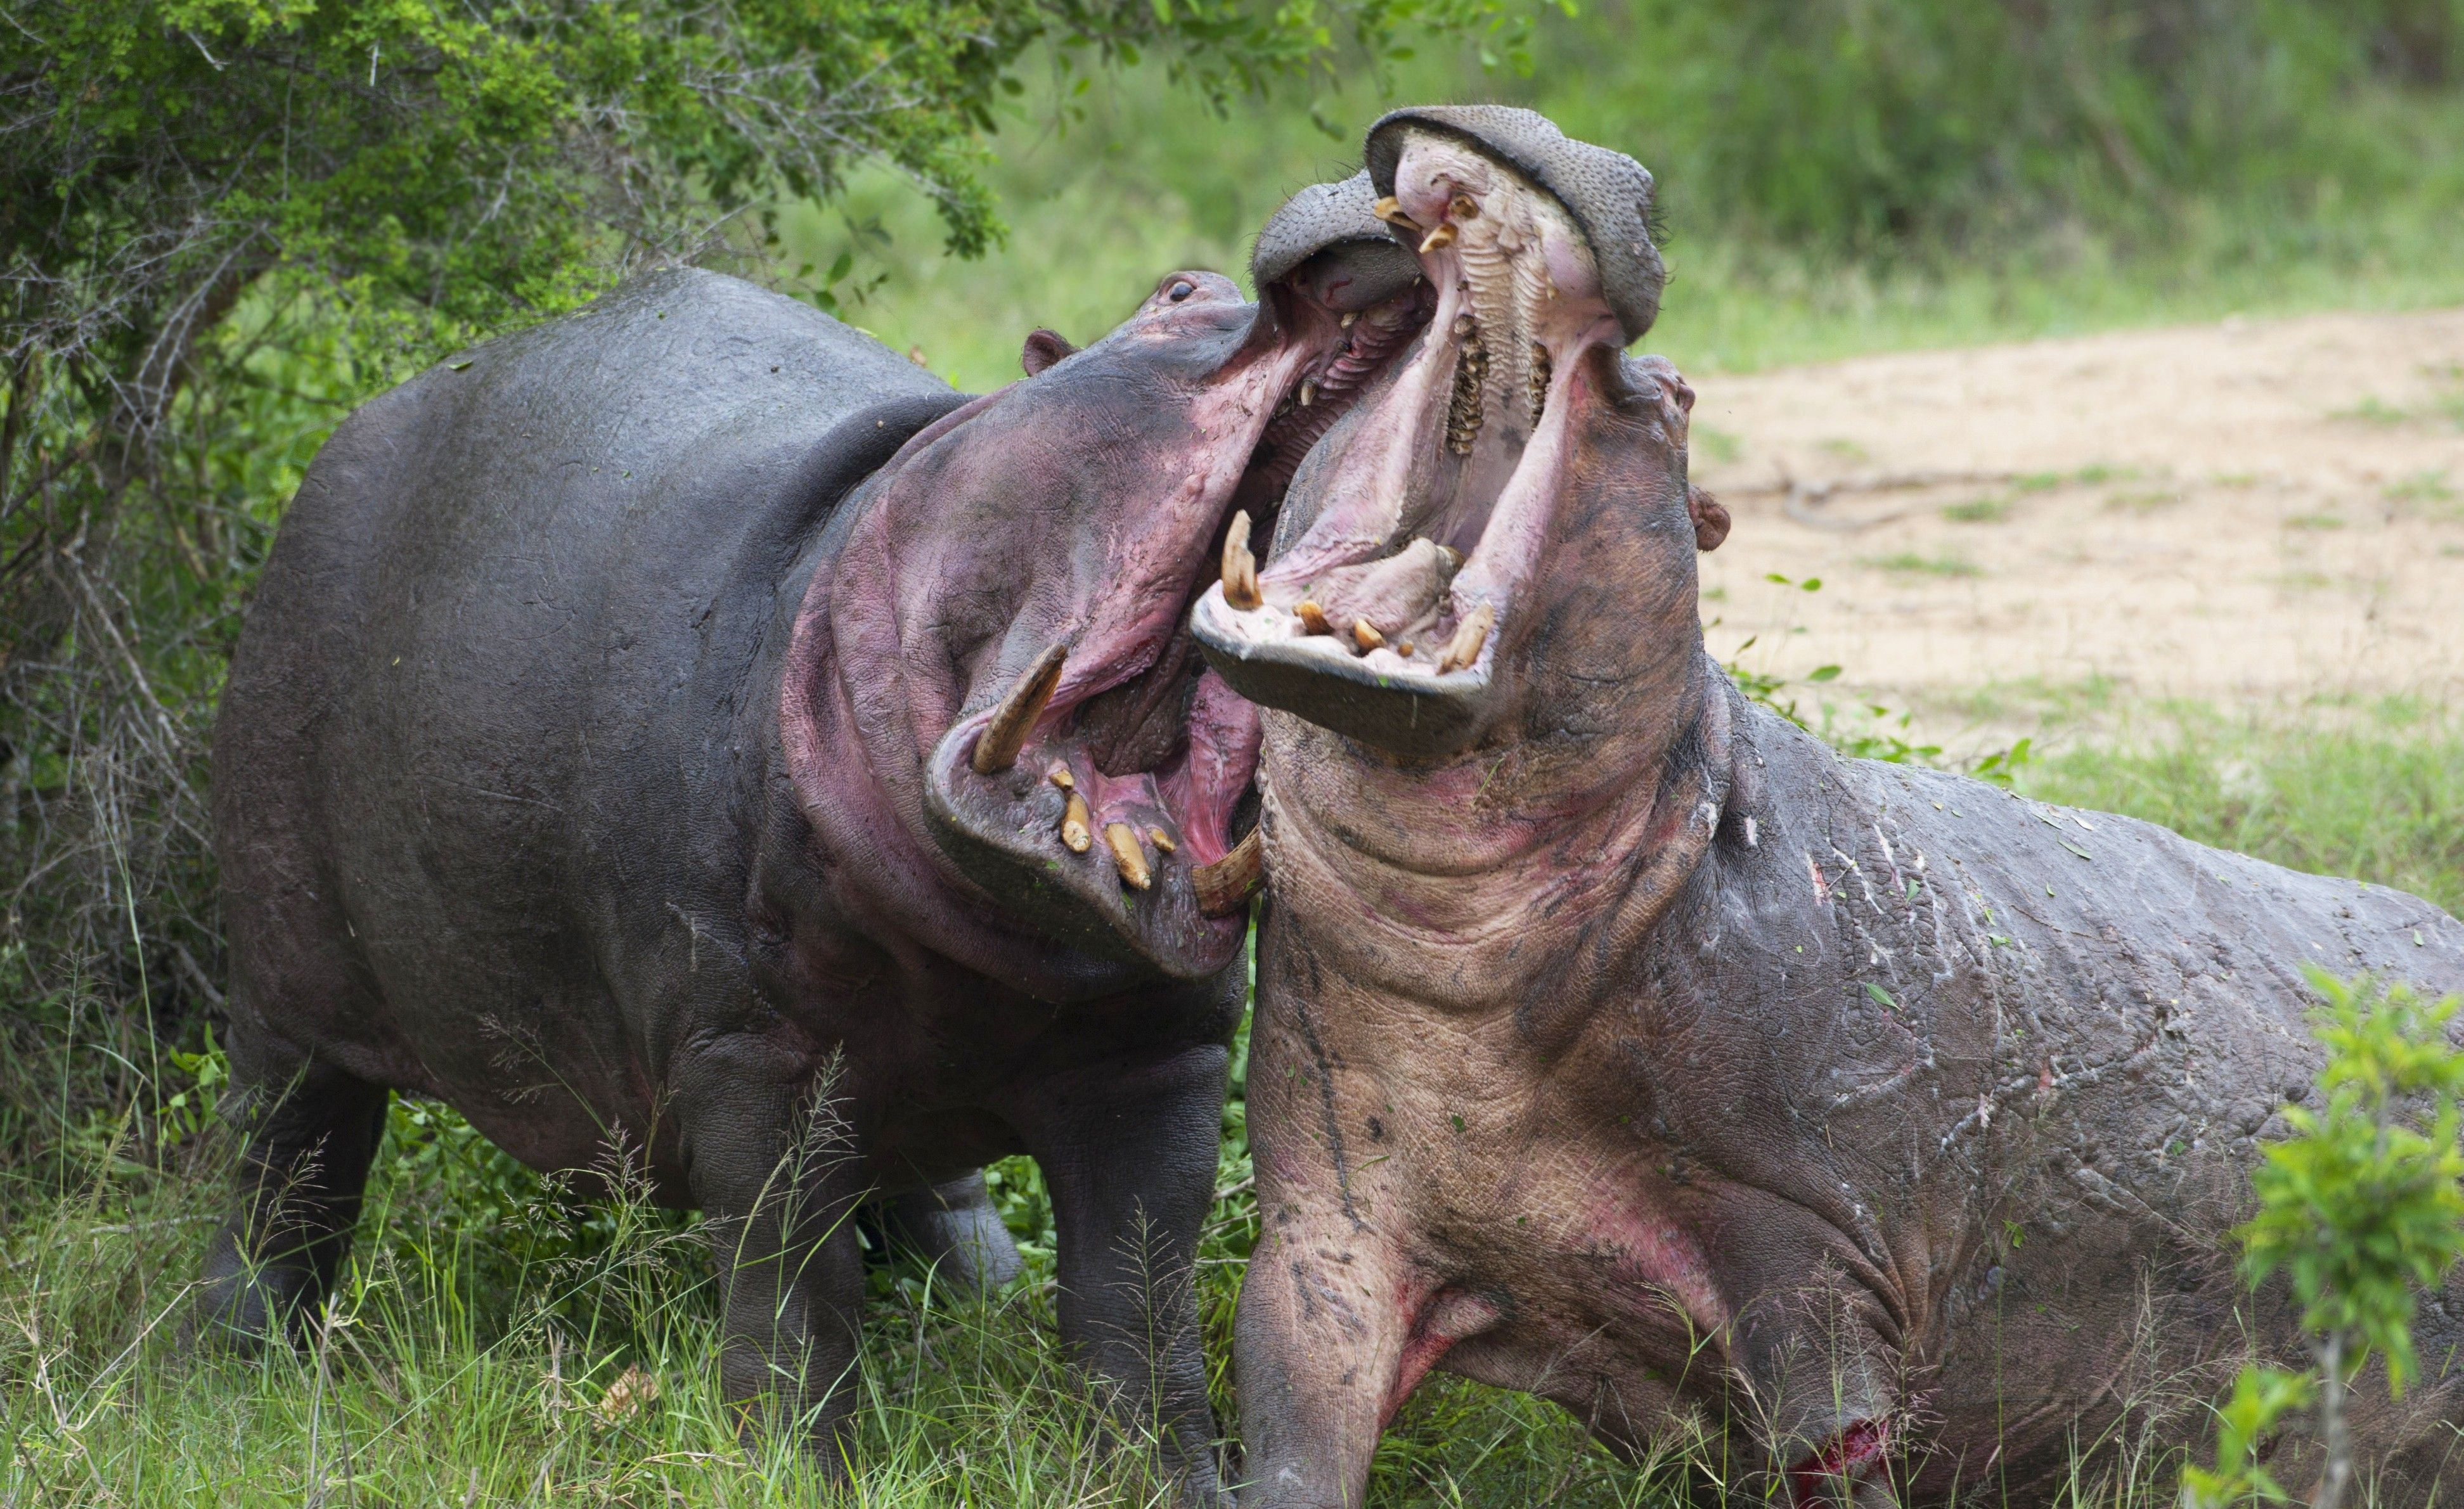 Hippo can run up to 30 mph and will chase and attack anything that comes into their territory